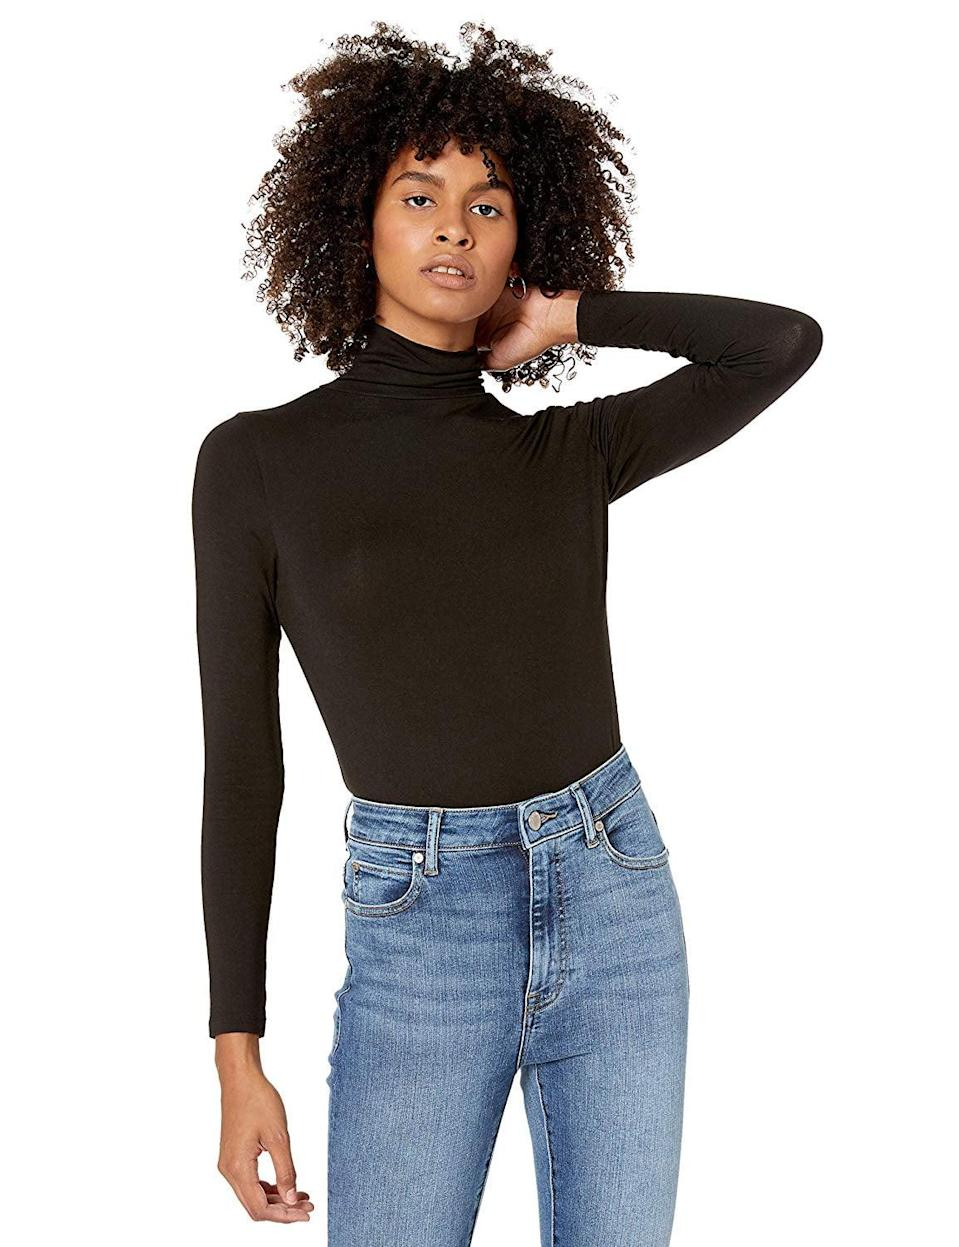 """<p>You're going to live in this <a href=""""https://www.popsugar.com/buy/Drop-Women-Phoebe-Long-Sleeved-Turtleneck-Fitted-T-Shirt-480608?p_name=The%20Drop%20Women%27s%20Phoebe%20Long-Sleeved%20Turtleneck%20Fitted%20T-Shirt&retailer=amazon.com&pid=480608&price=20&evar1=fab%3Aus&evar9=46804763&evar98=https%3A%2F%2Fwww.popsugar.com%2Ffashion%2Fphoto-gallery%2F46804763%2Fimage%2F46804832%2FStaple-Turtleneck&list1=shopping%2Cfall%20fashion%2Camazon%2Cfall&prop13=mobile&pdata=1"""" class=""""link rapid-noclick-resp"""" rel=""""nofollow noopener"""" target=""""_blank"""" data-ylk=""""slk:The Drop Women's Phoebe Long-Sleeved Turtleneck Fitted T-Shirt"""">The Drop Women's Phoebe Long-Sleeved Turtleneck Fitted T-Shirt</a> ($20).</p>"""